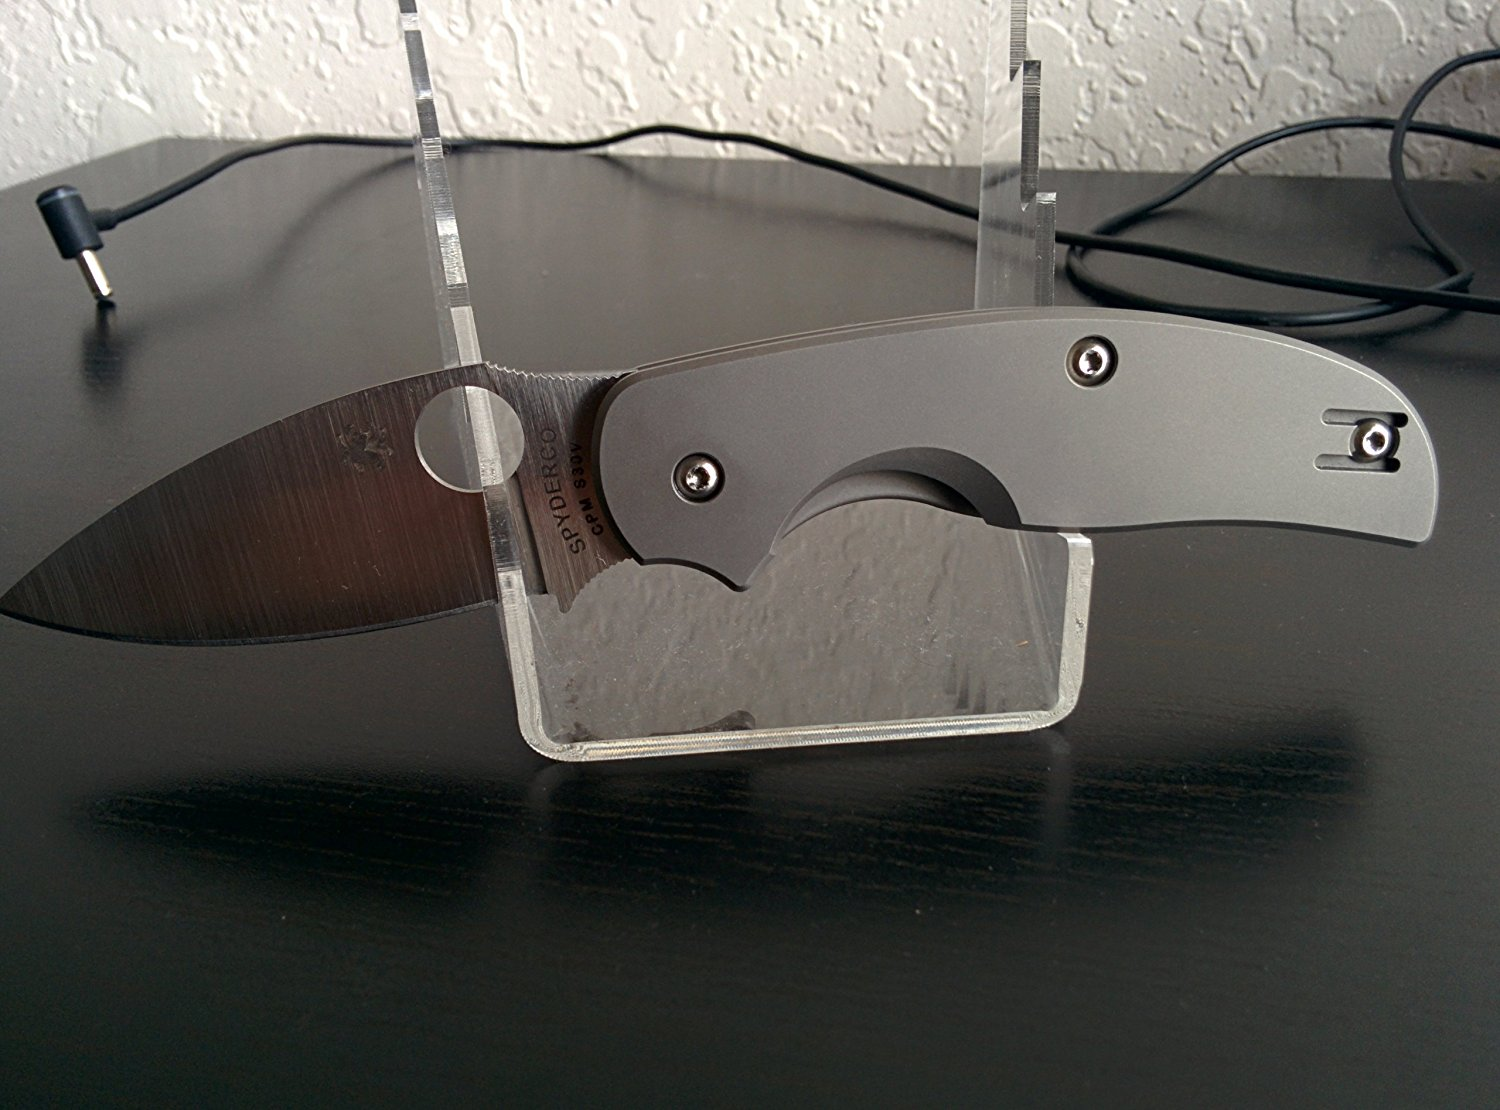 Sage2 Titanium PlainEdge Knife